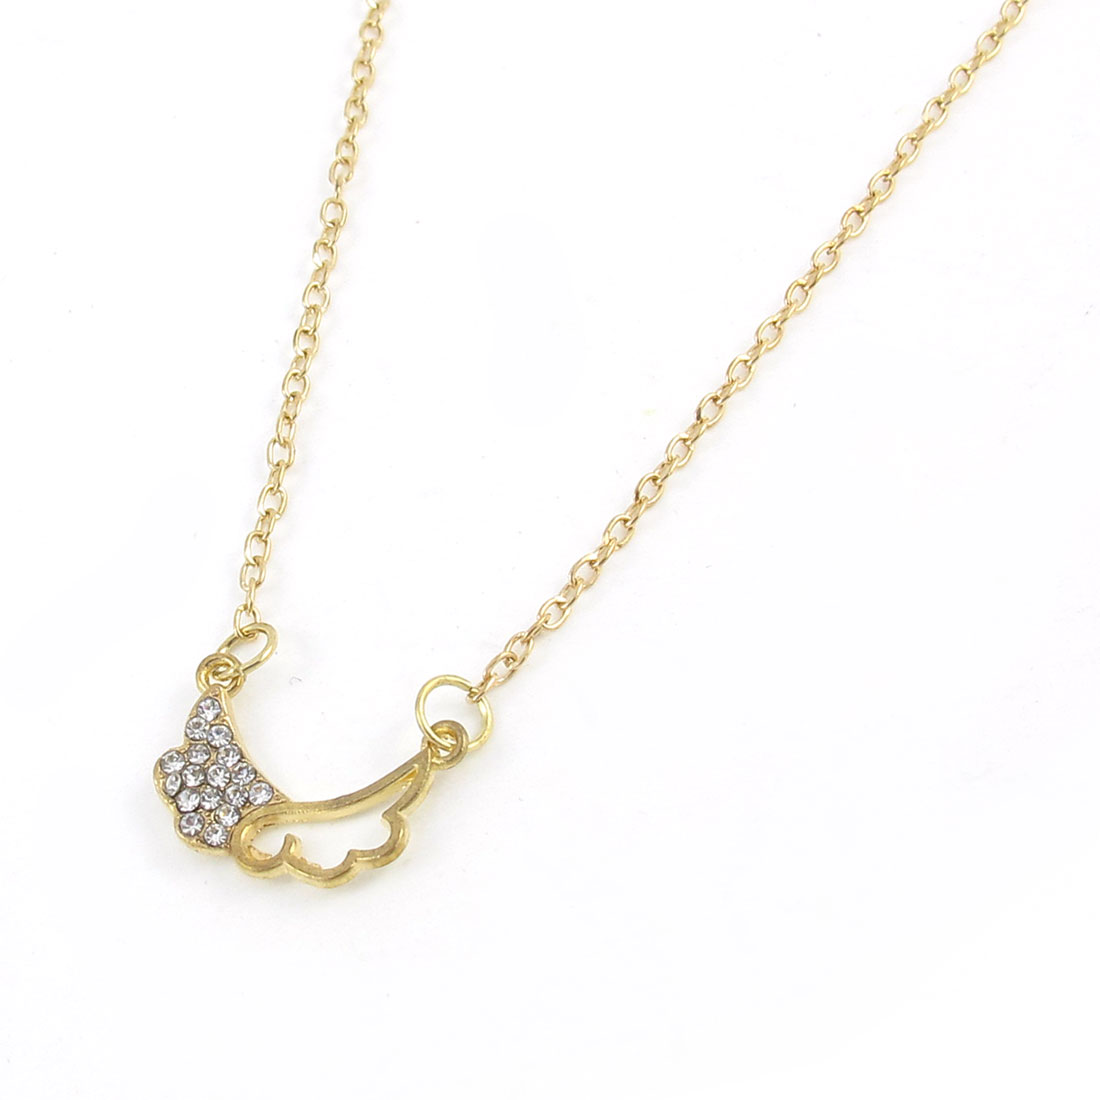 Wing of Love Shape Pendant Necklace Chain Gold Tone for Lady